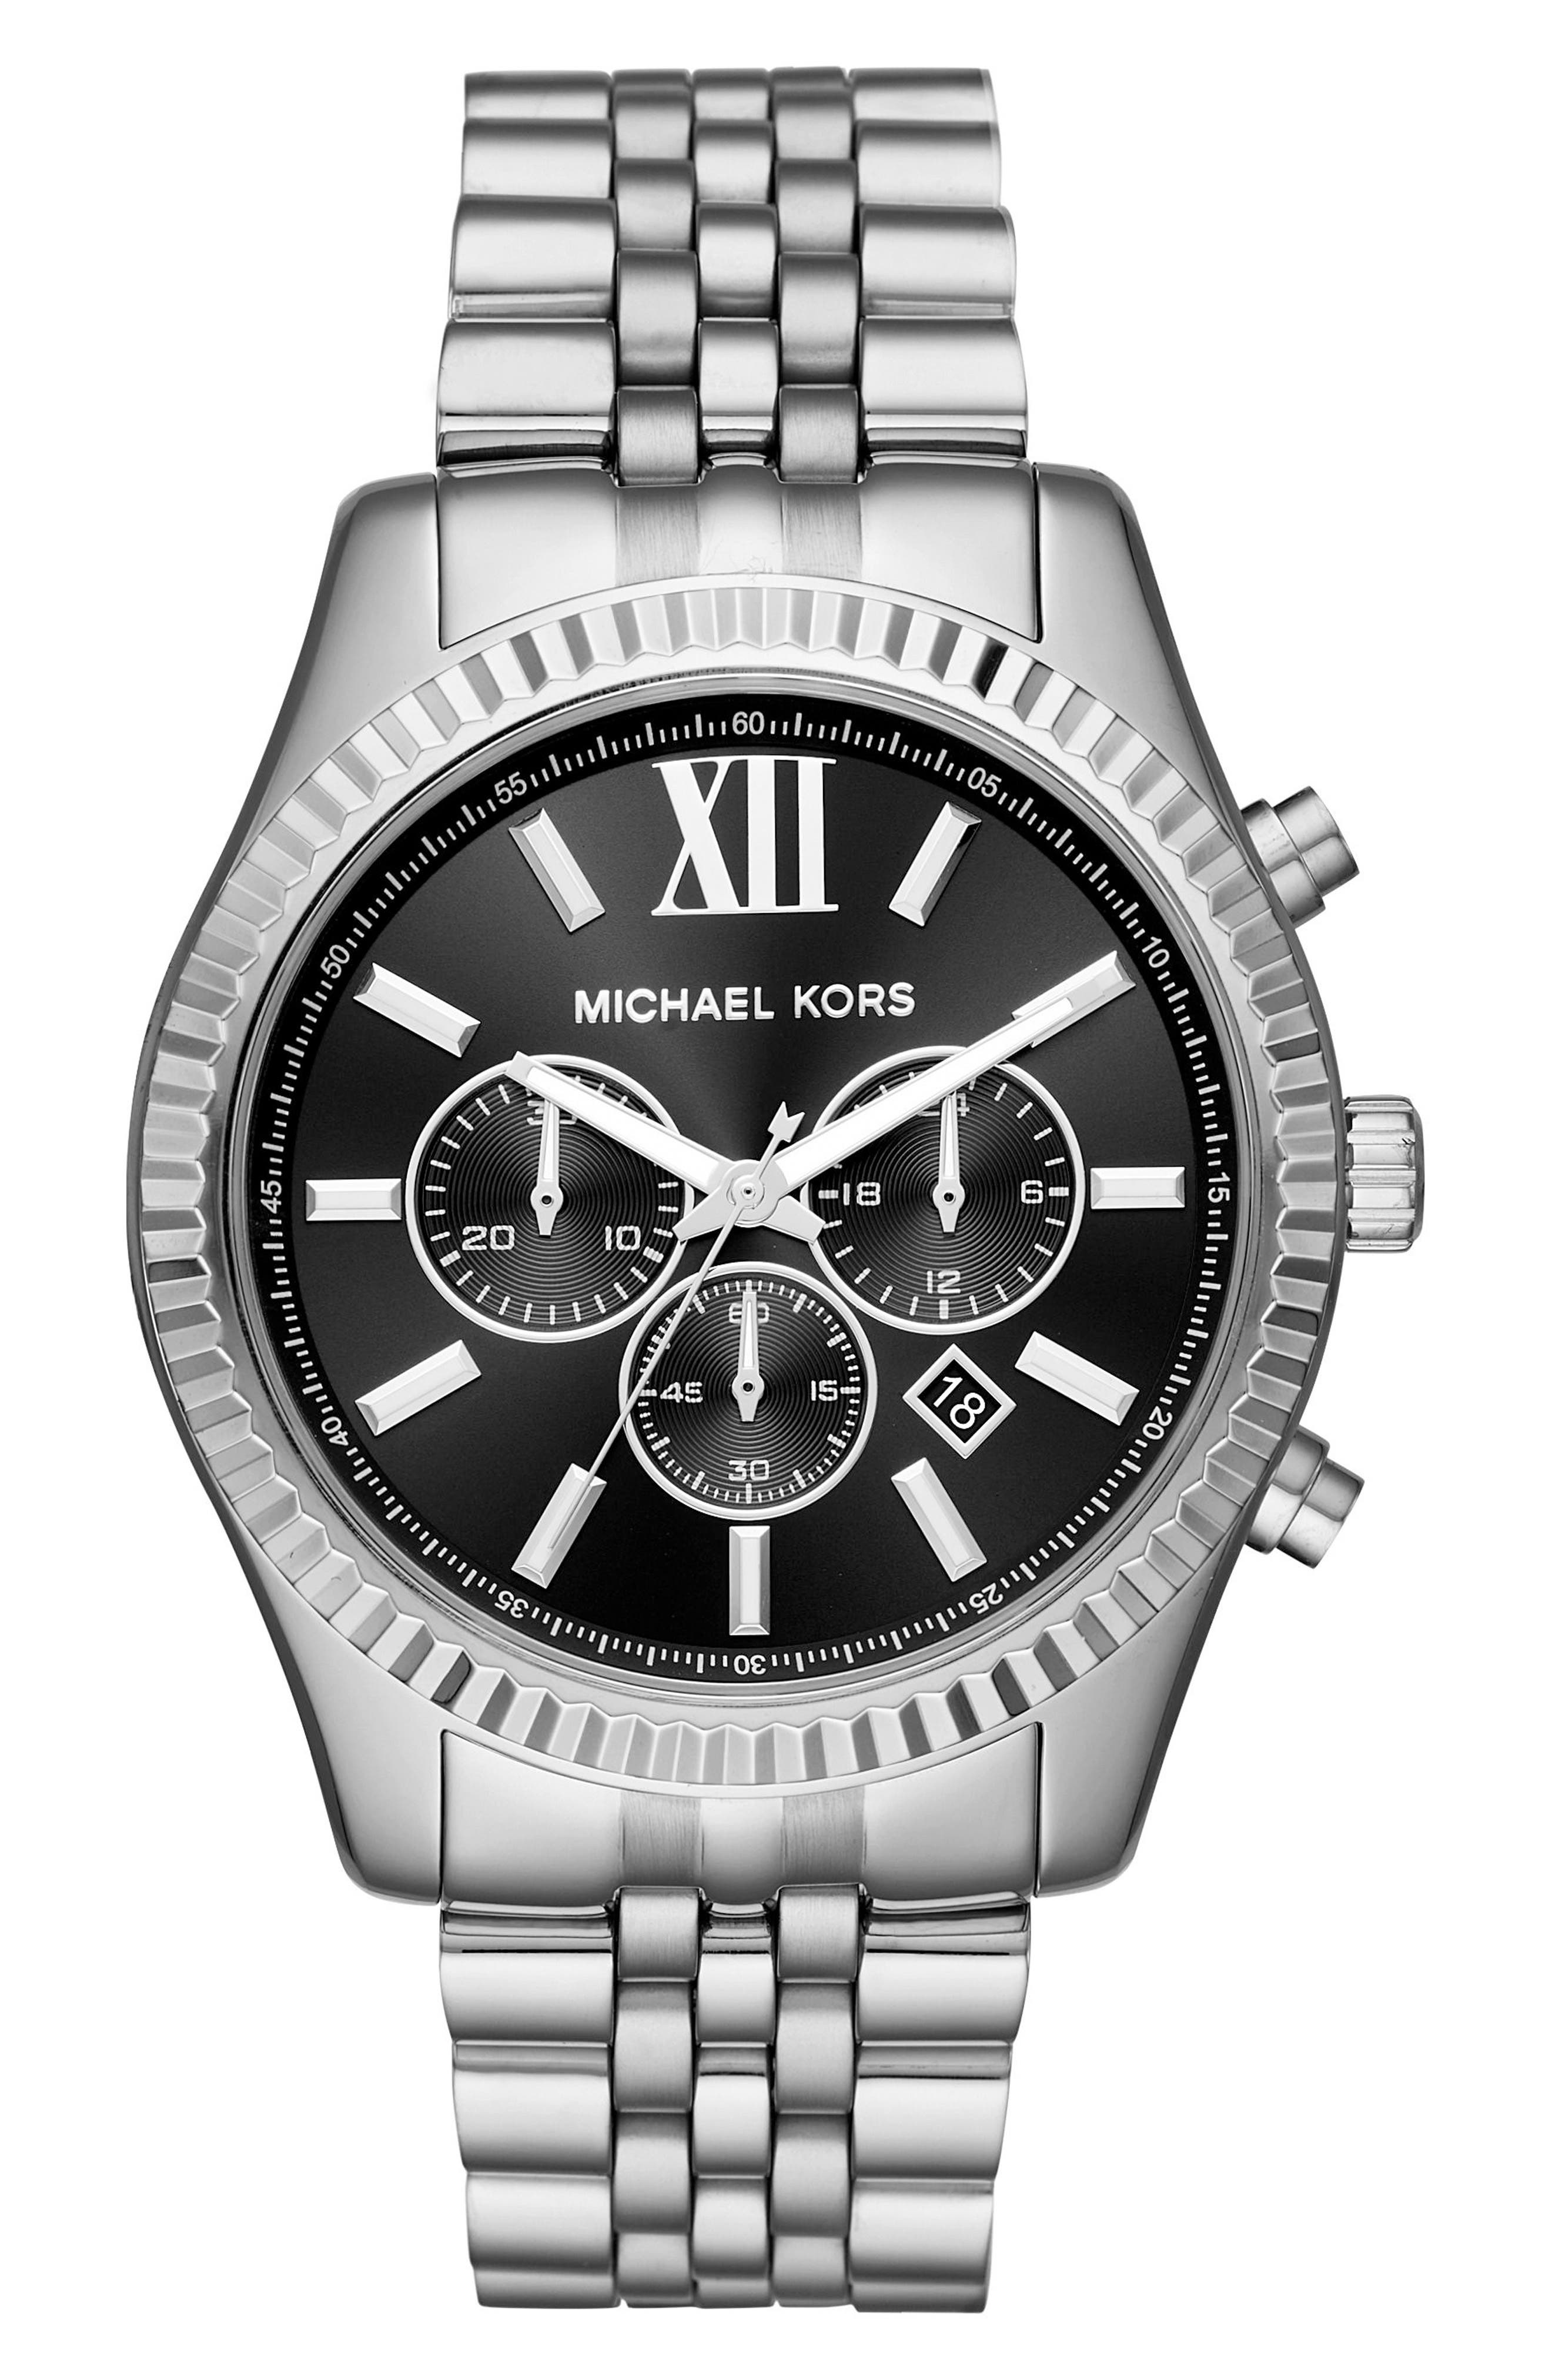 MICHAEL KORS, Lexington Bracelet Chronograph Watch, 44mm x 54mm, Main thumbnail 1, color, SILVER/ BLACK/ SILVER